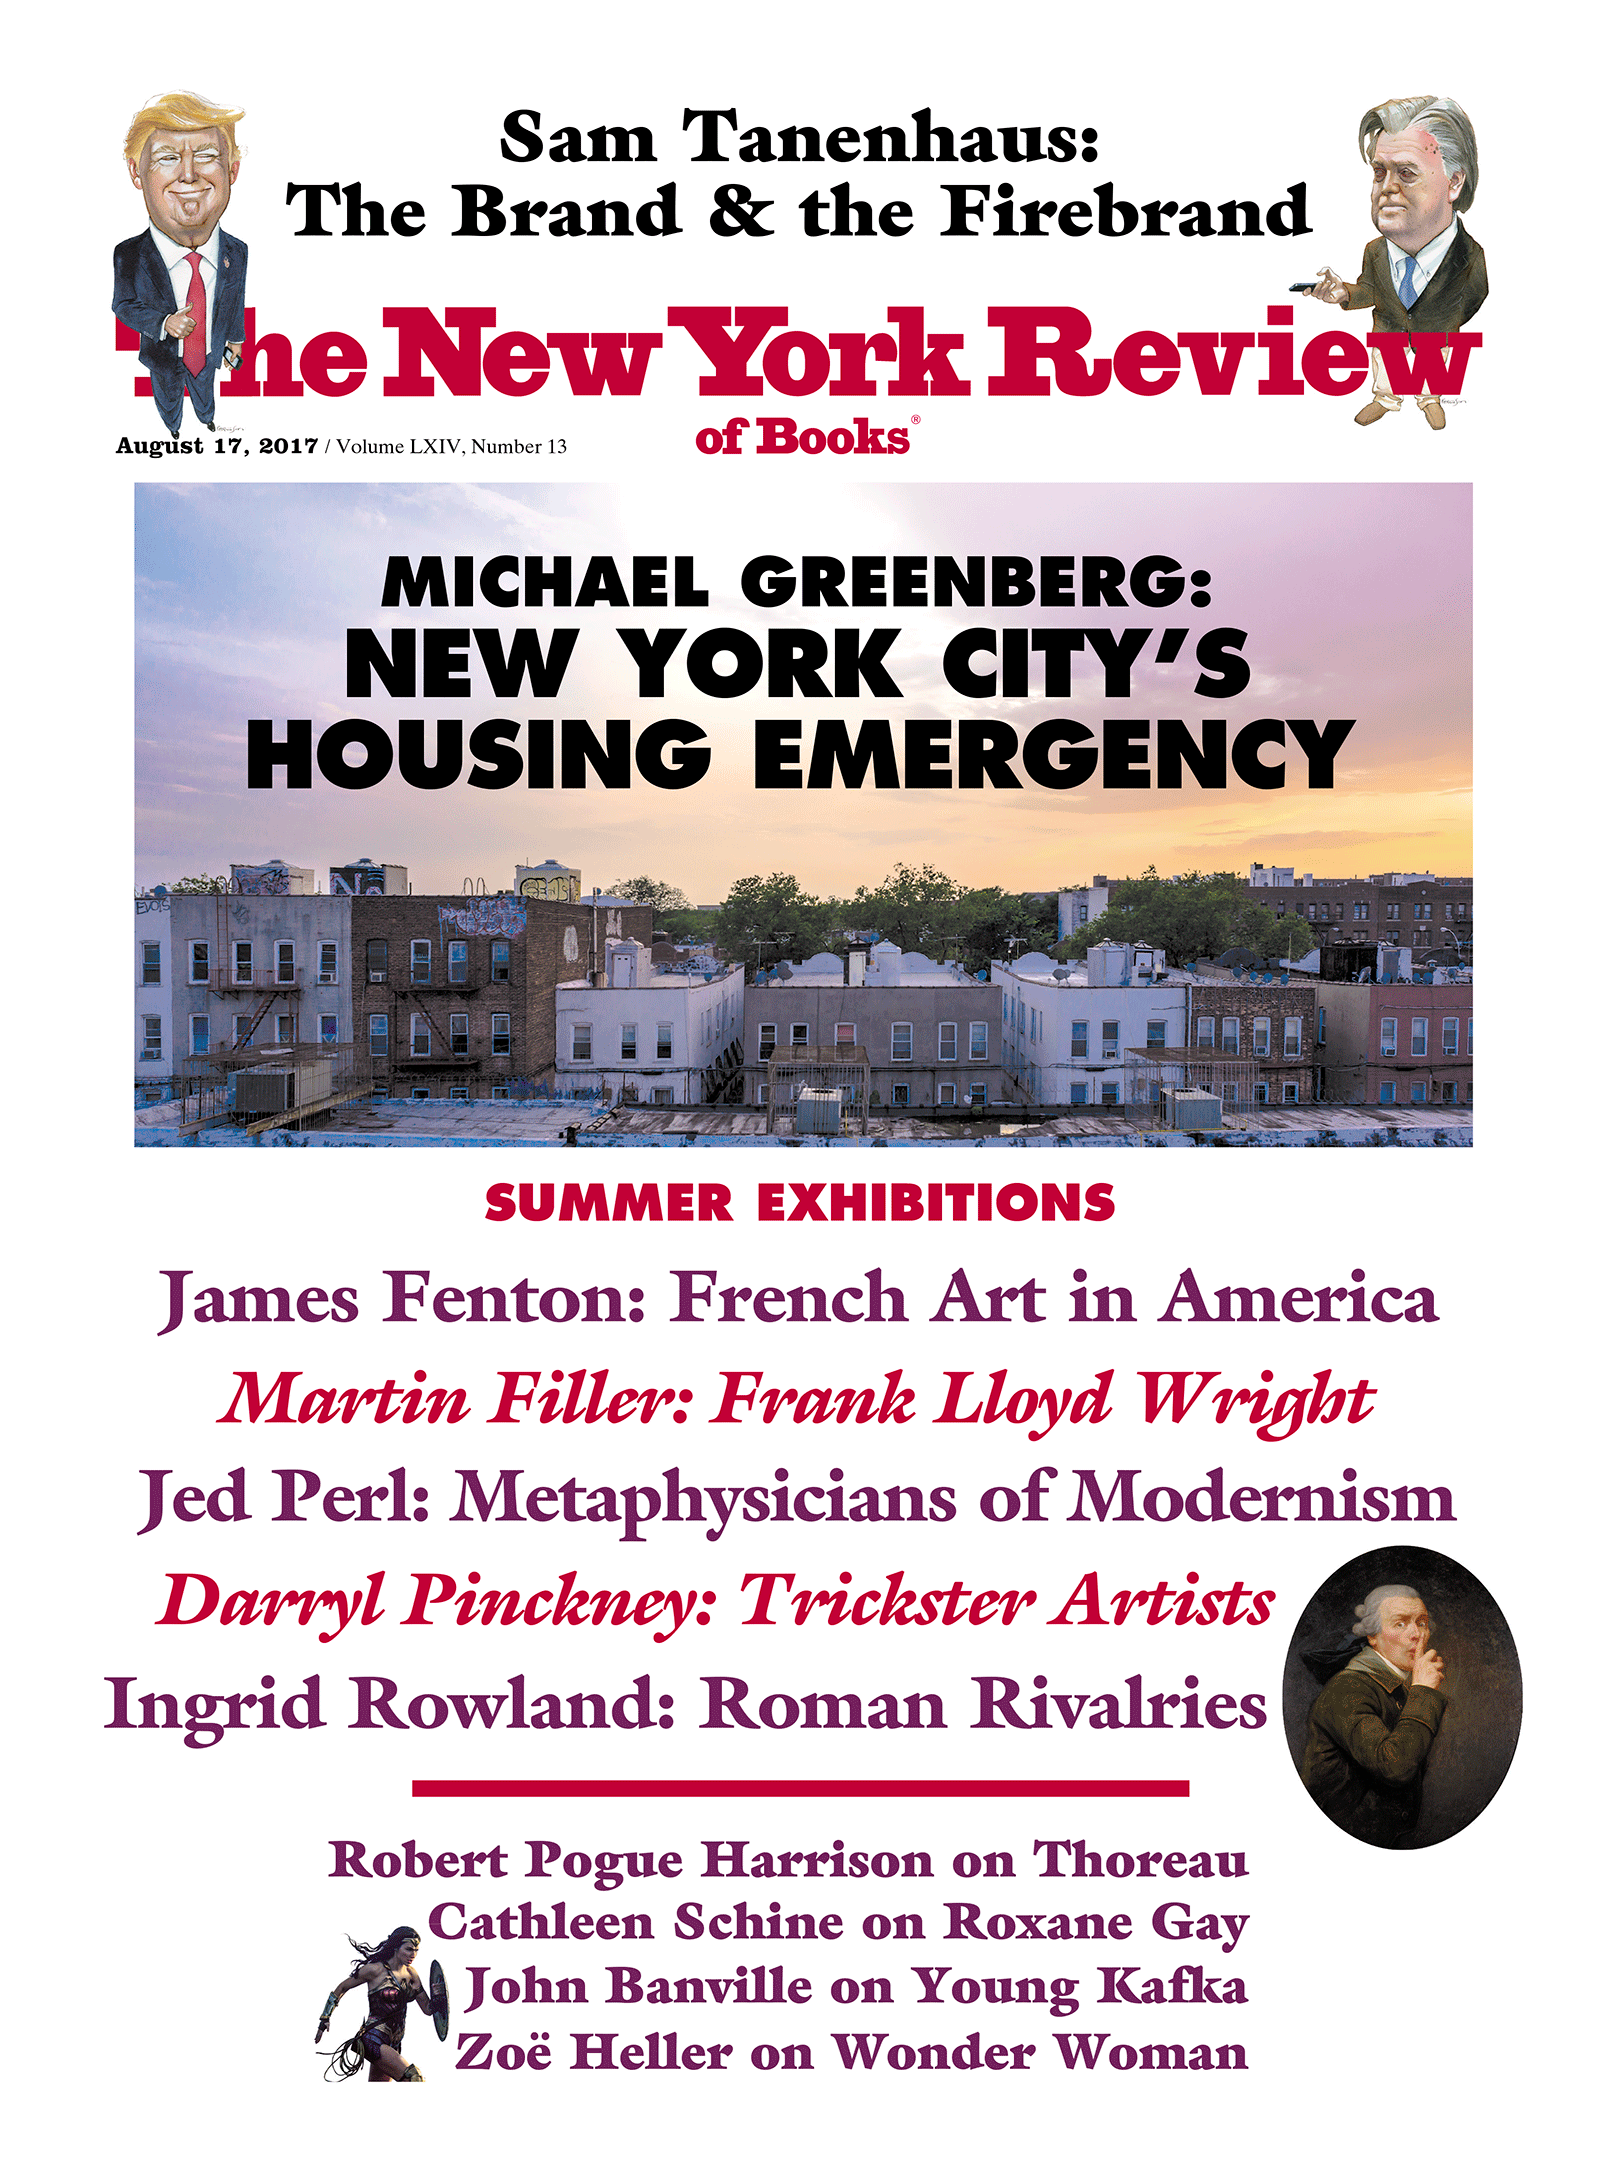 Image of the August 17, 2017 issue cover.